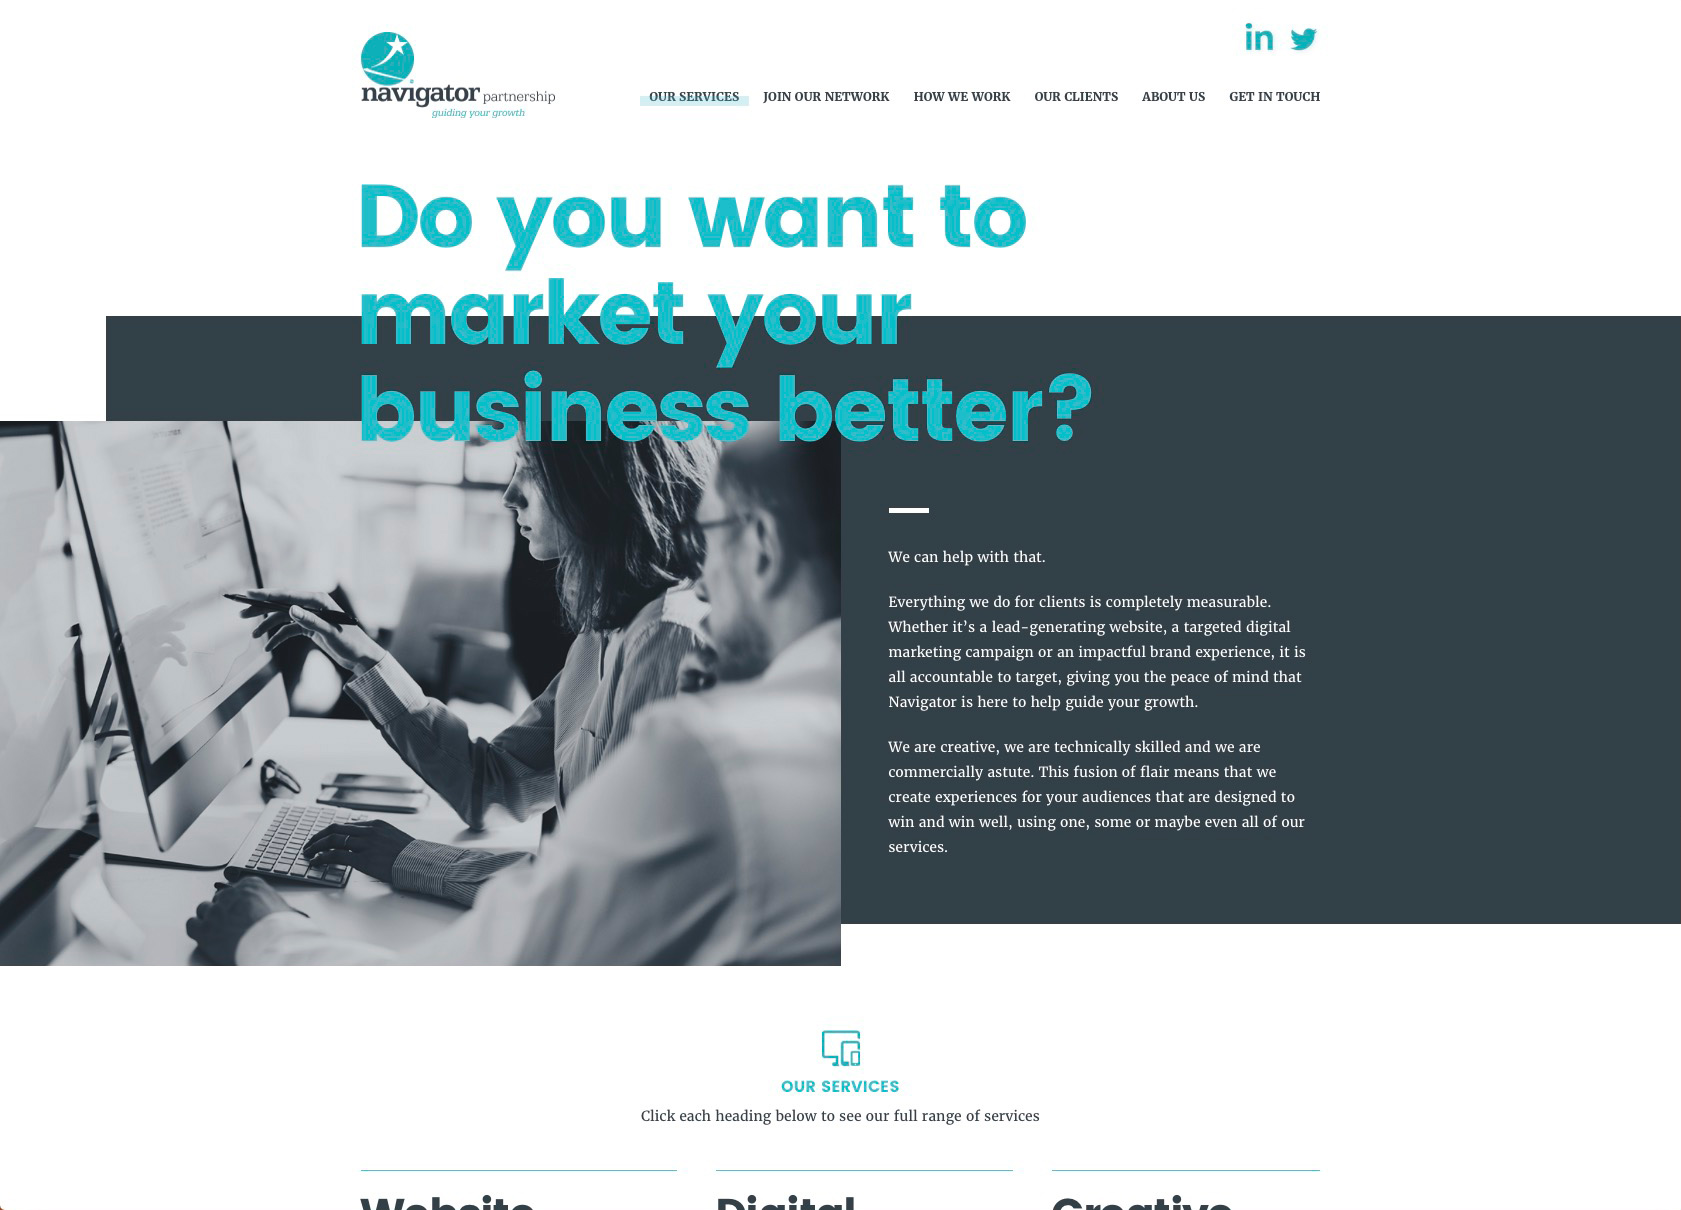 The Navigator Partnership services page showing business imagery and services offered